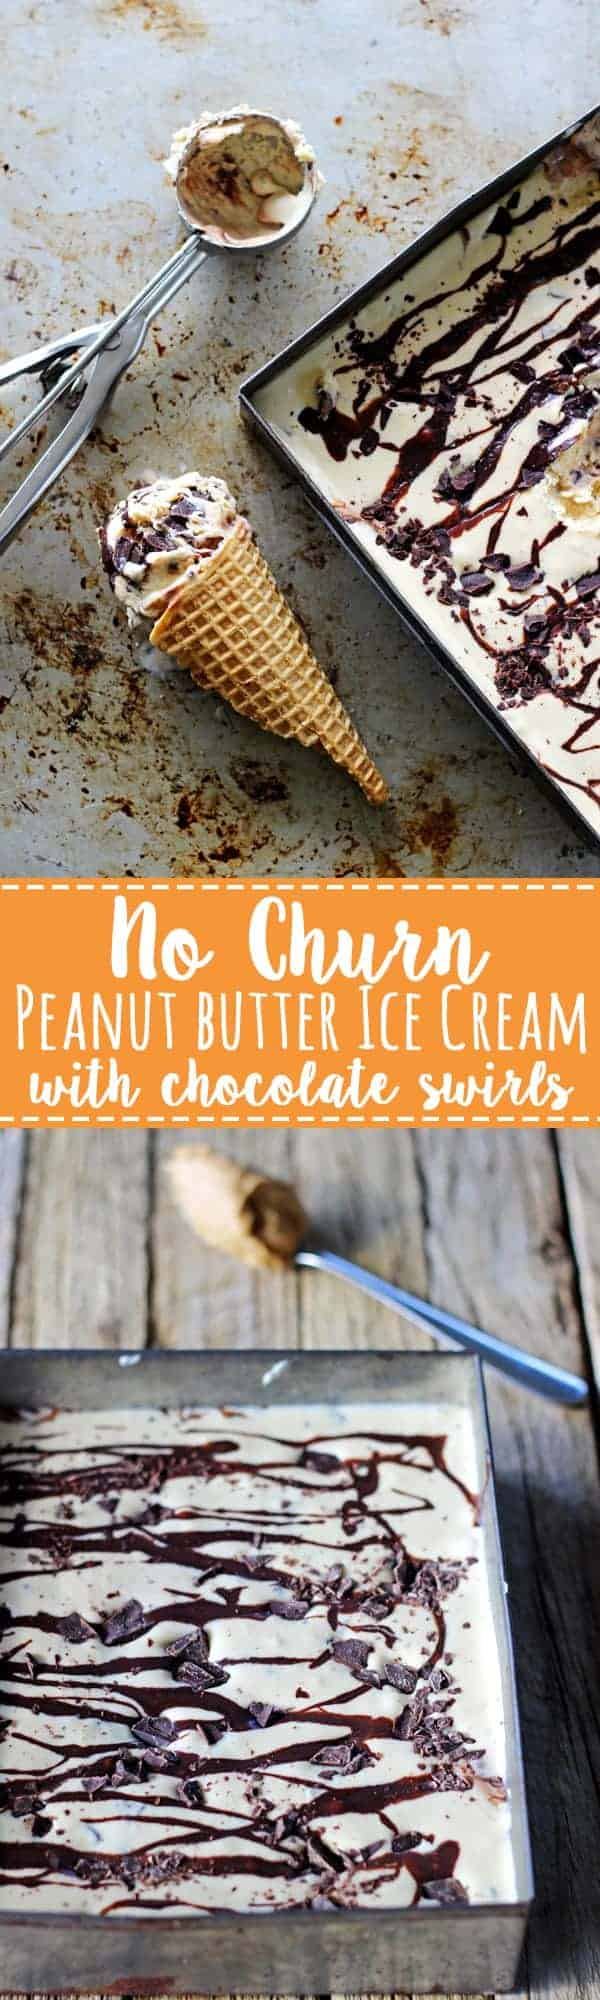 The best no churn peanut butter ice cream with chocolate. Quick, easy no churn peanut butter ice cream with dark chocolate chunks & a chocolate swirl! | thekiwicountrygirl.com